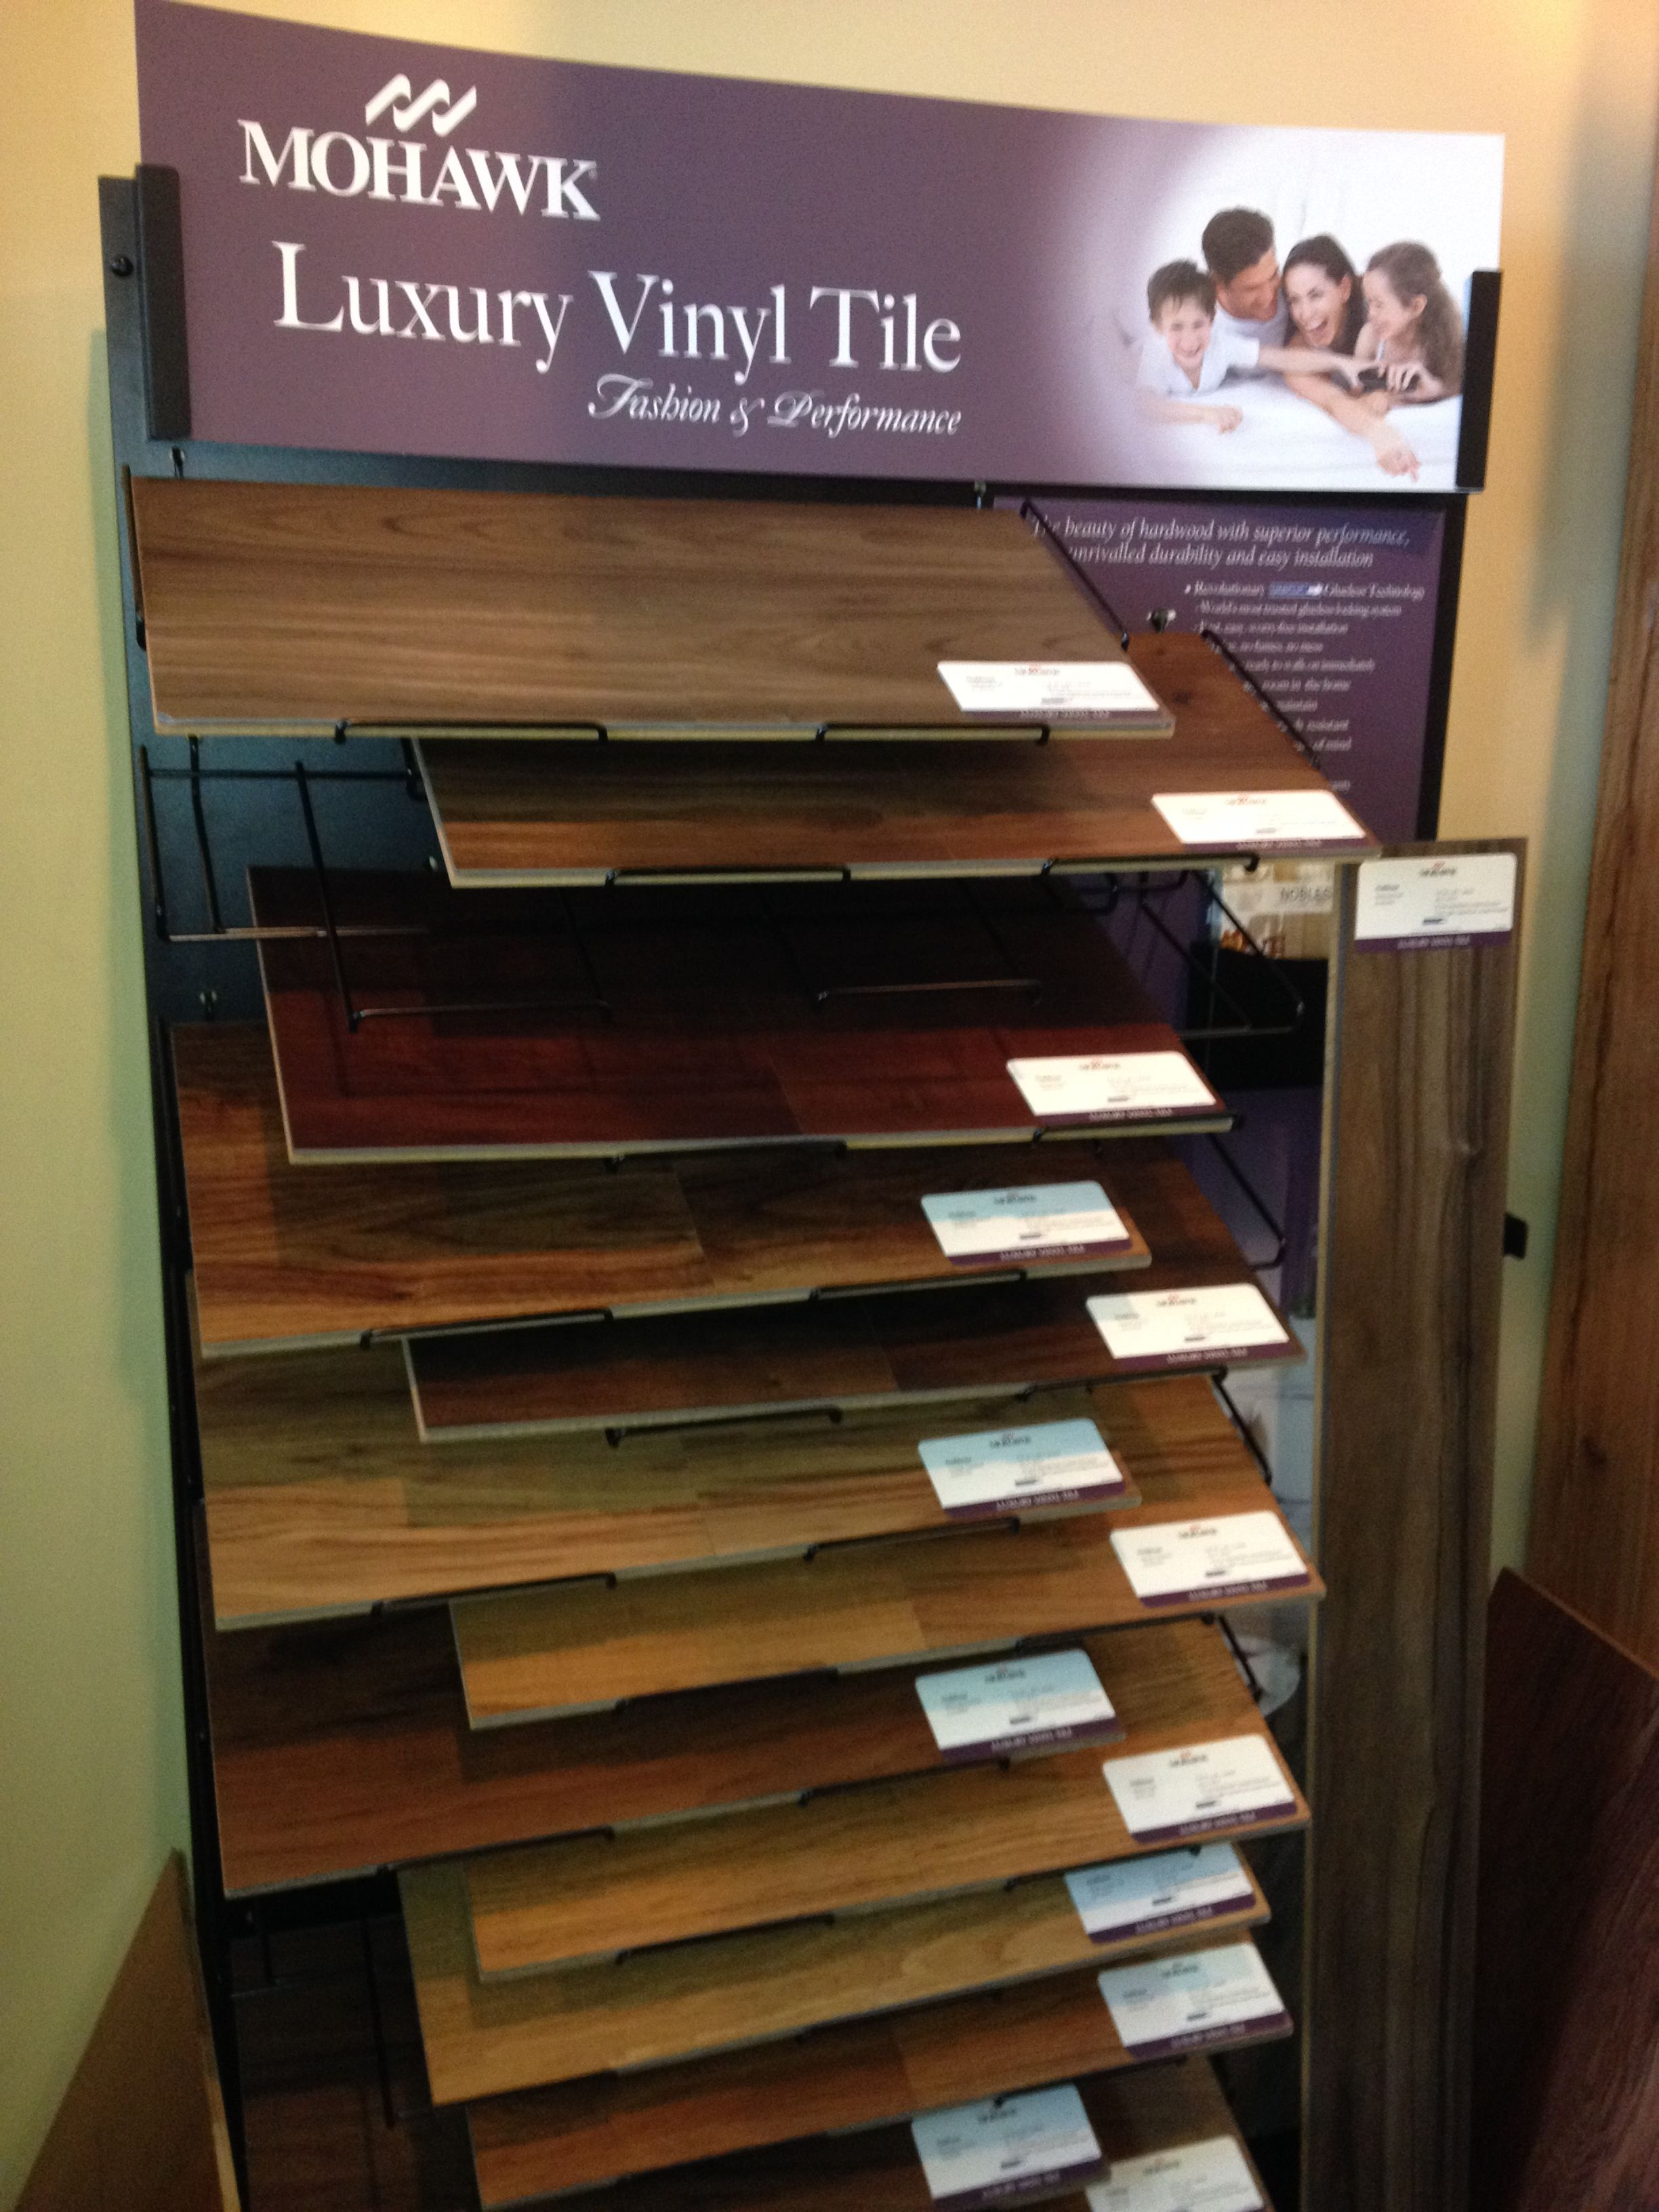 Mohawk lvt luxury vinyl tile in the newest and most popular